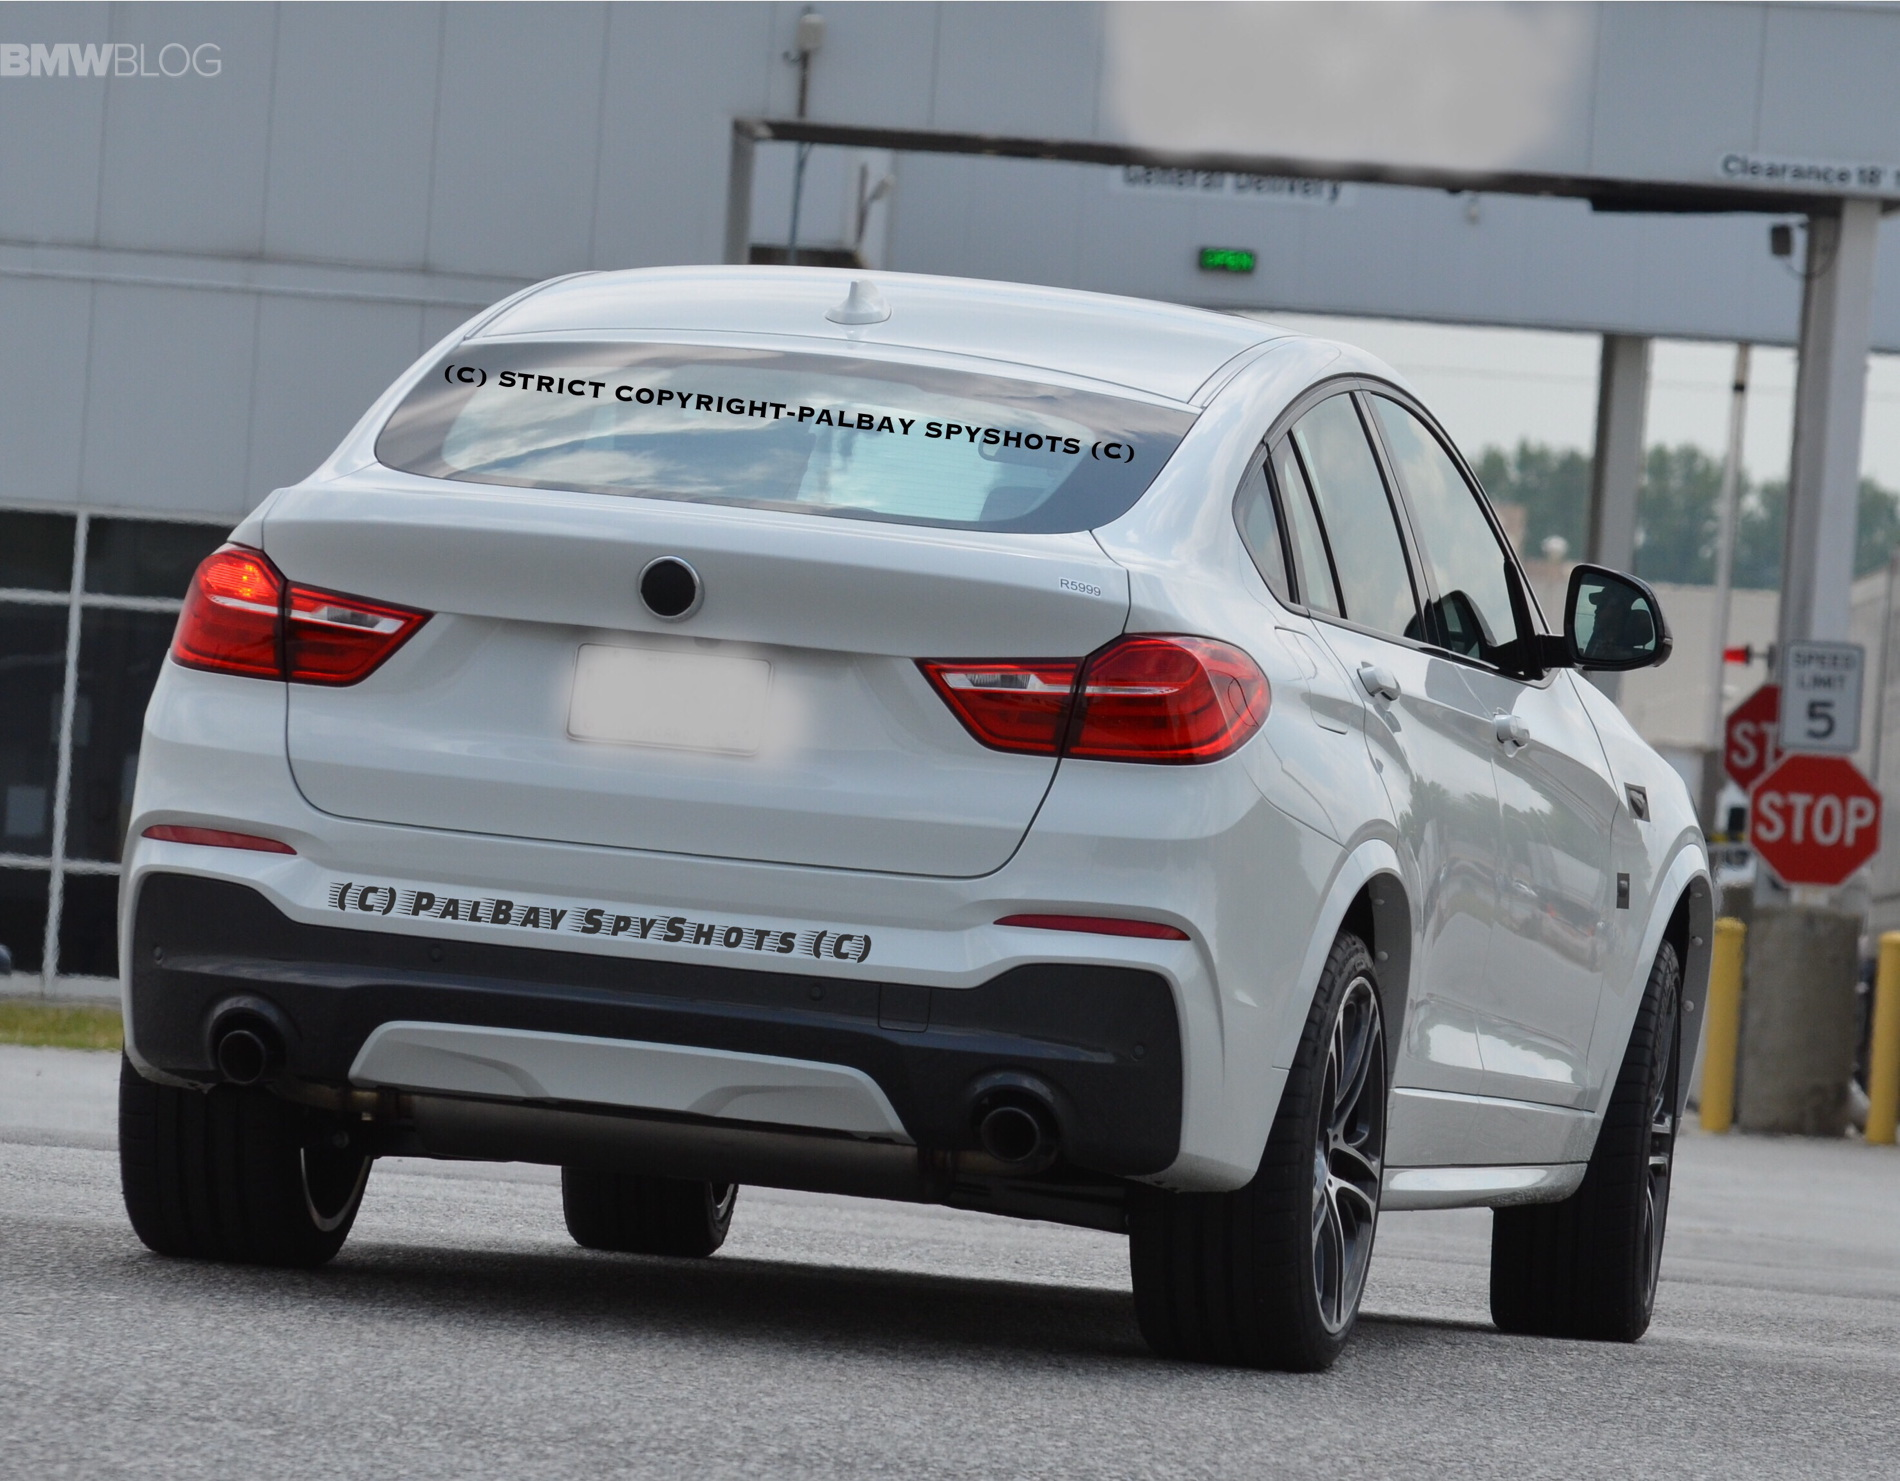 2017 BMW X4 M40i Real Life Photos 09 750x585